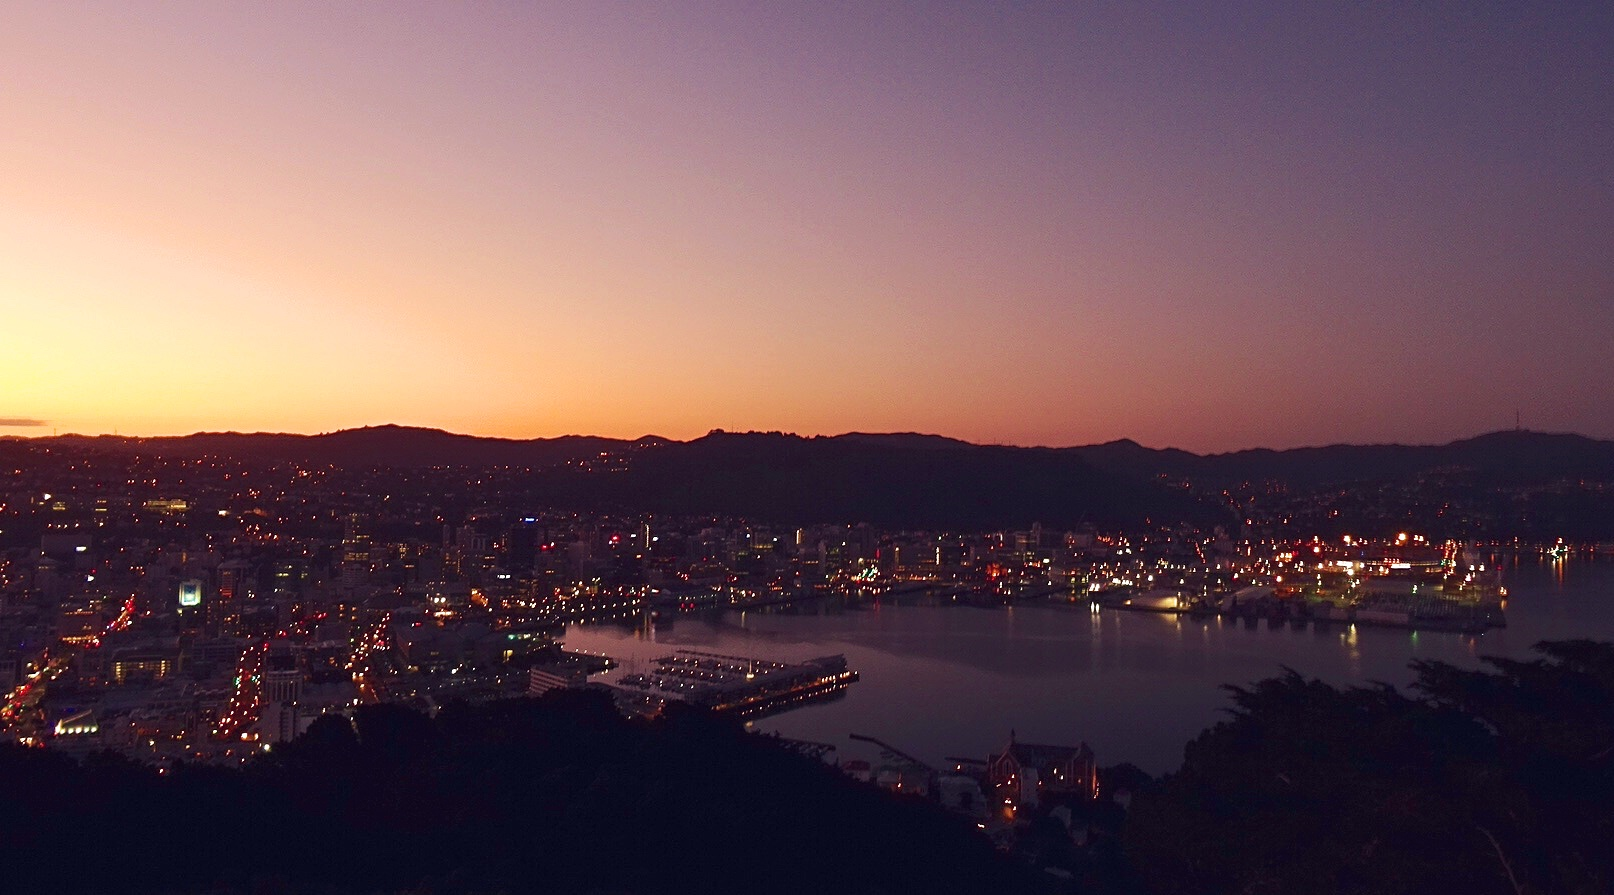 The view from Mount Victoria at dusk